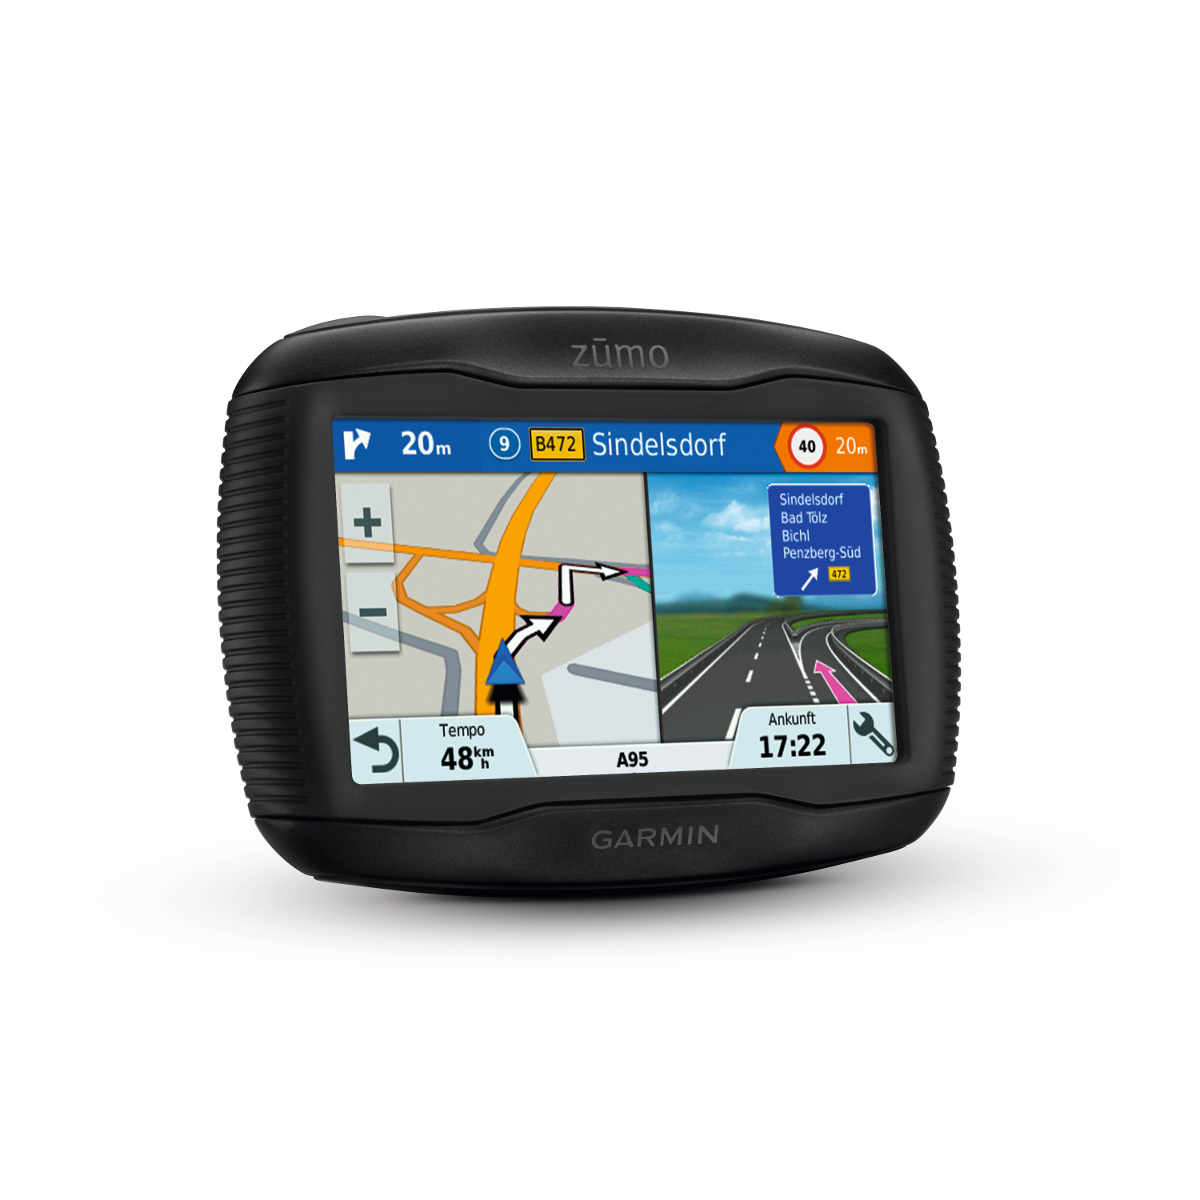 garmin zumo 395lm test motorrad navigation. Black Bedroom Furniture Sets. Home Design Ideas